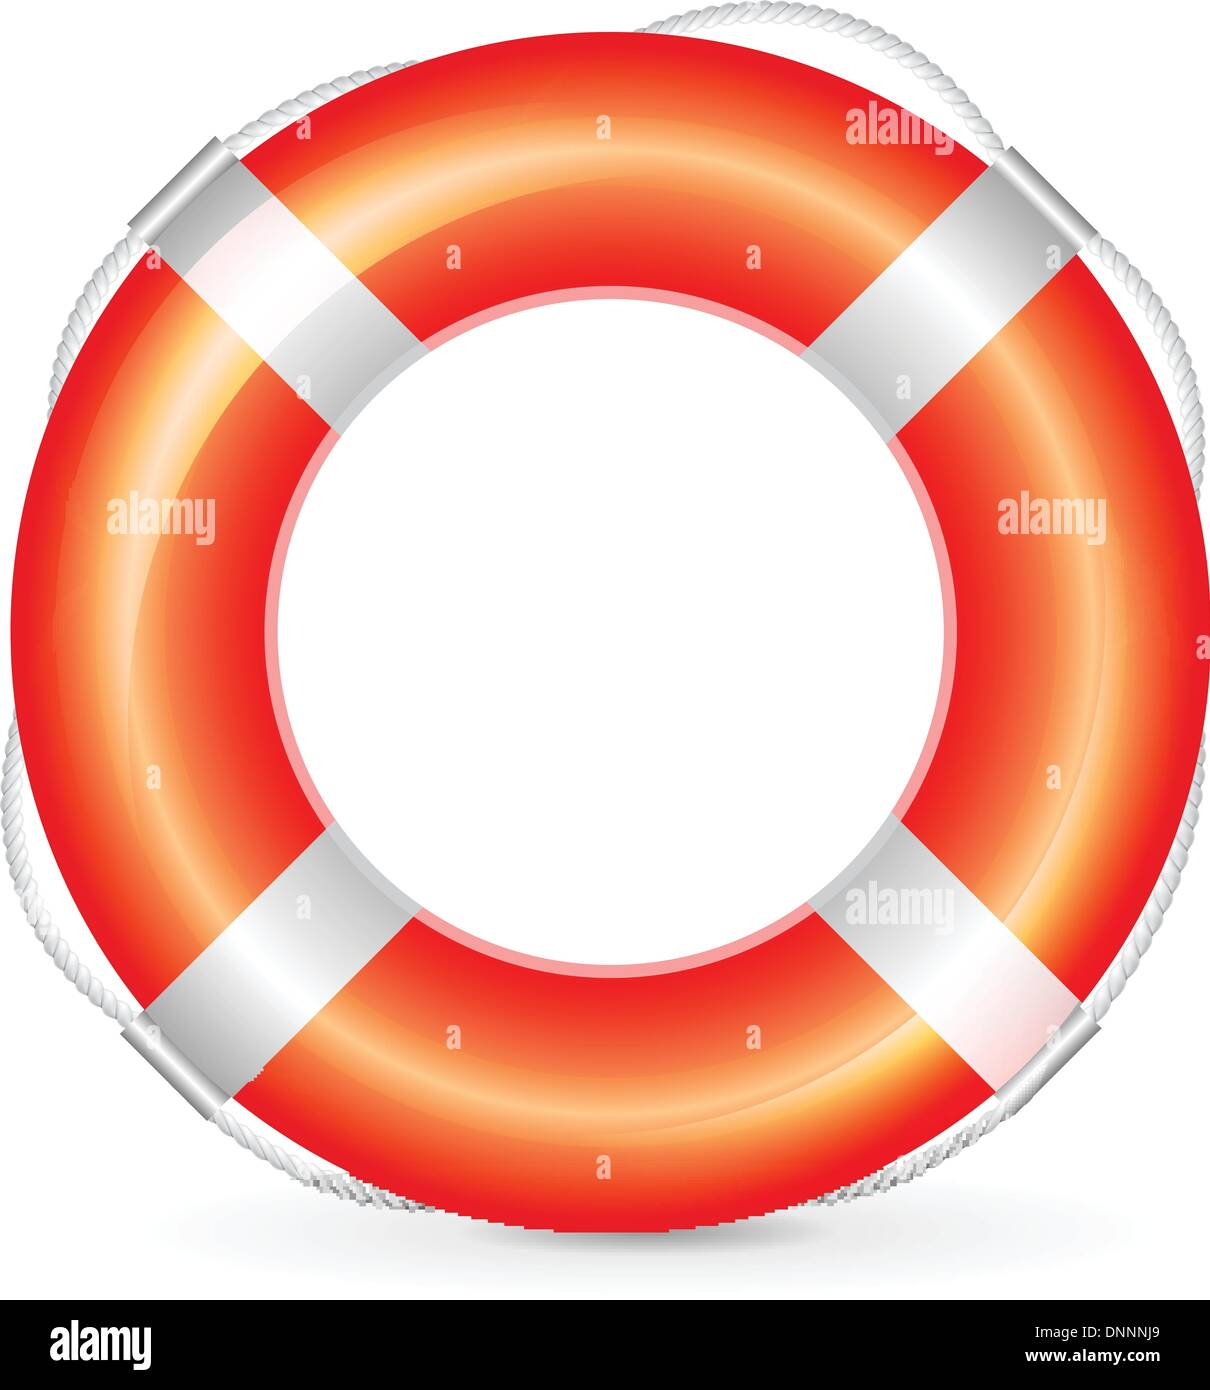 Realistic red lifebuoy with rope on white background - Stock Image